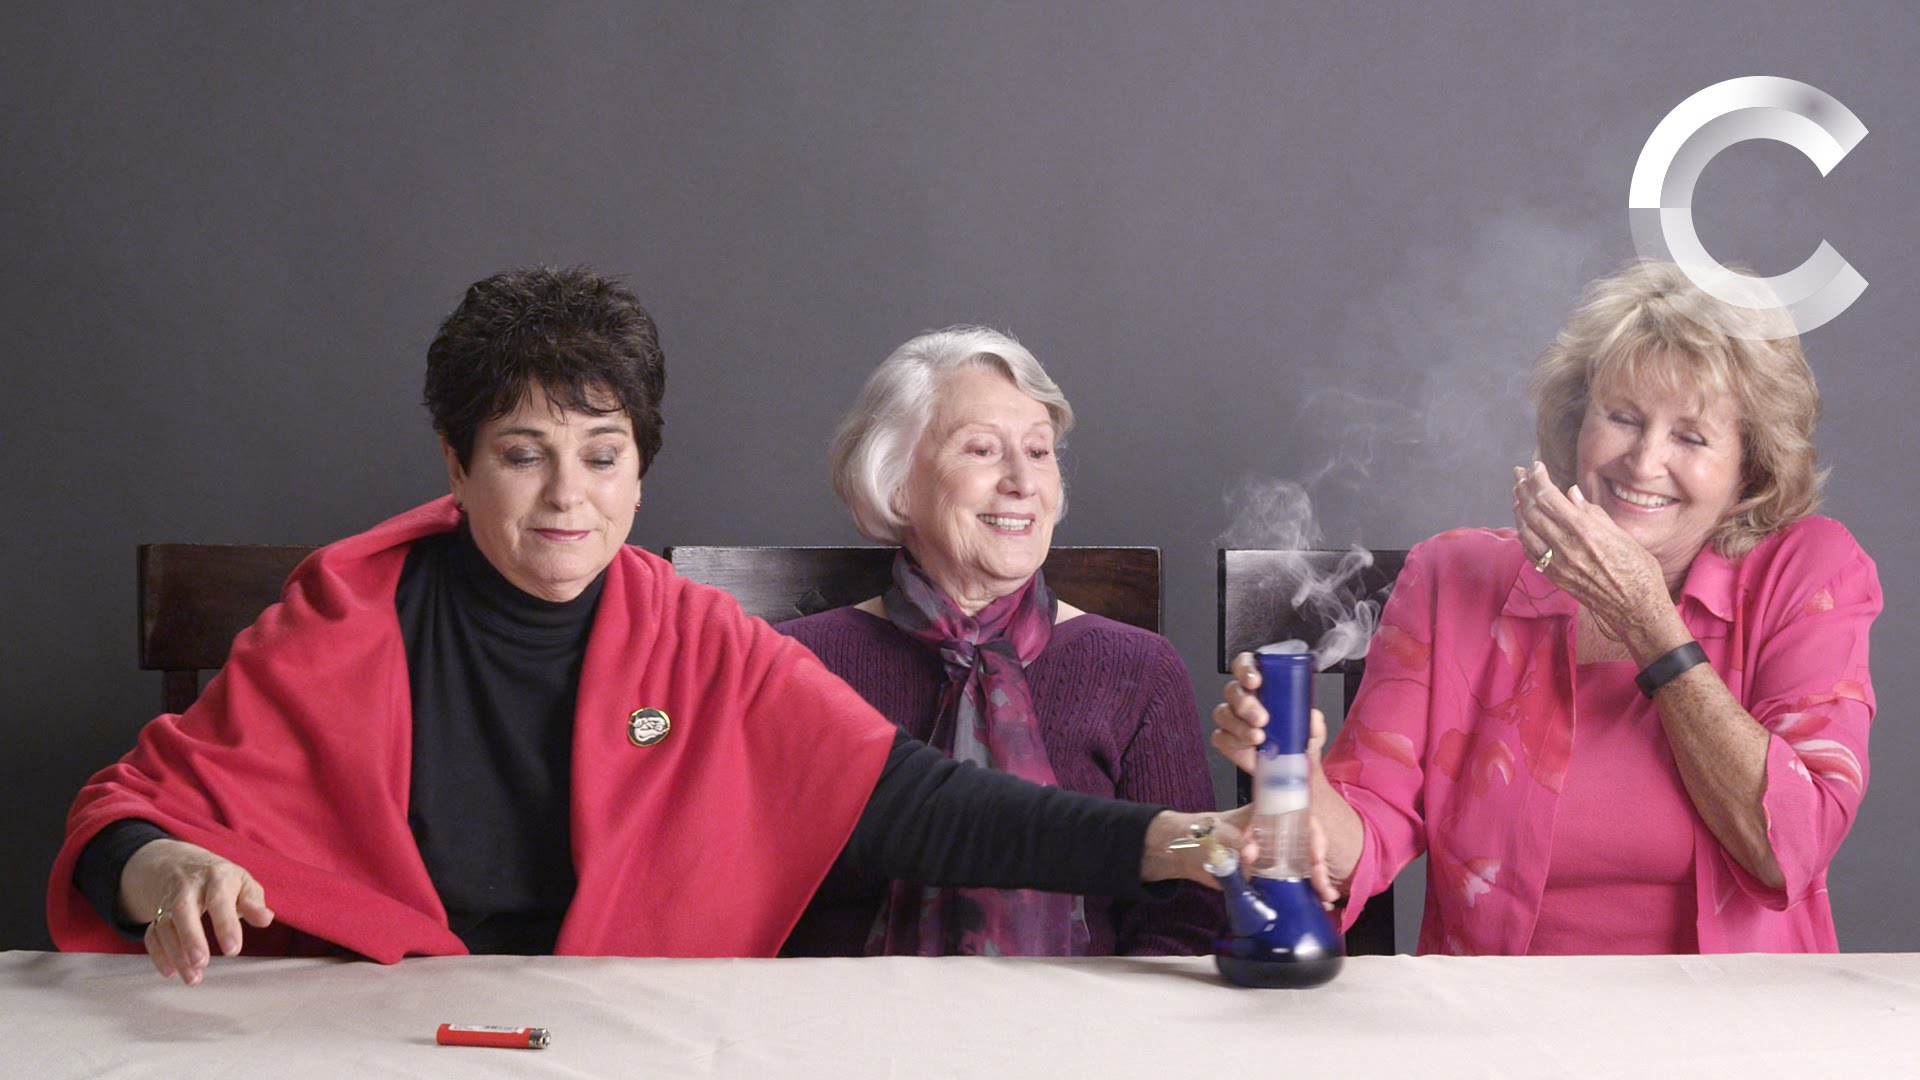 WATCH: Grandmas Smoking Weed for the First Time